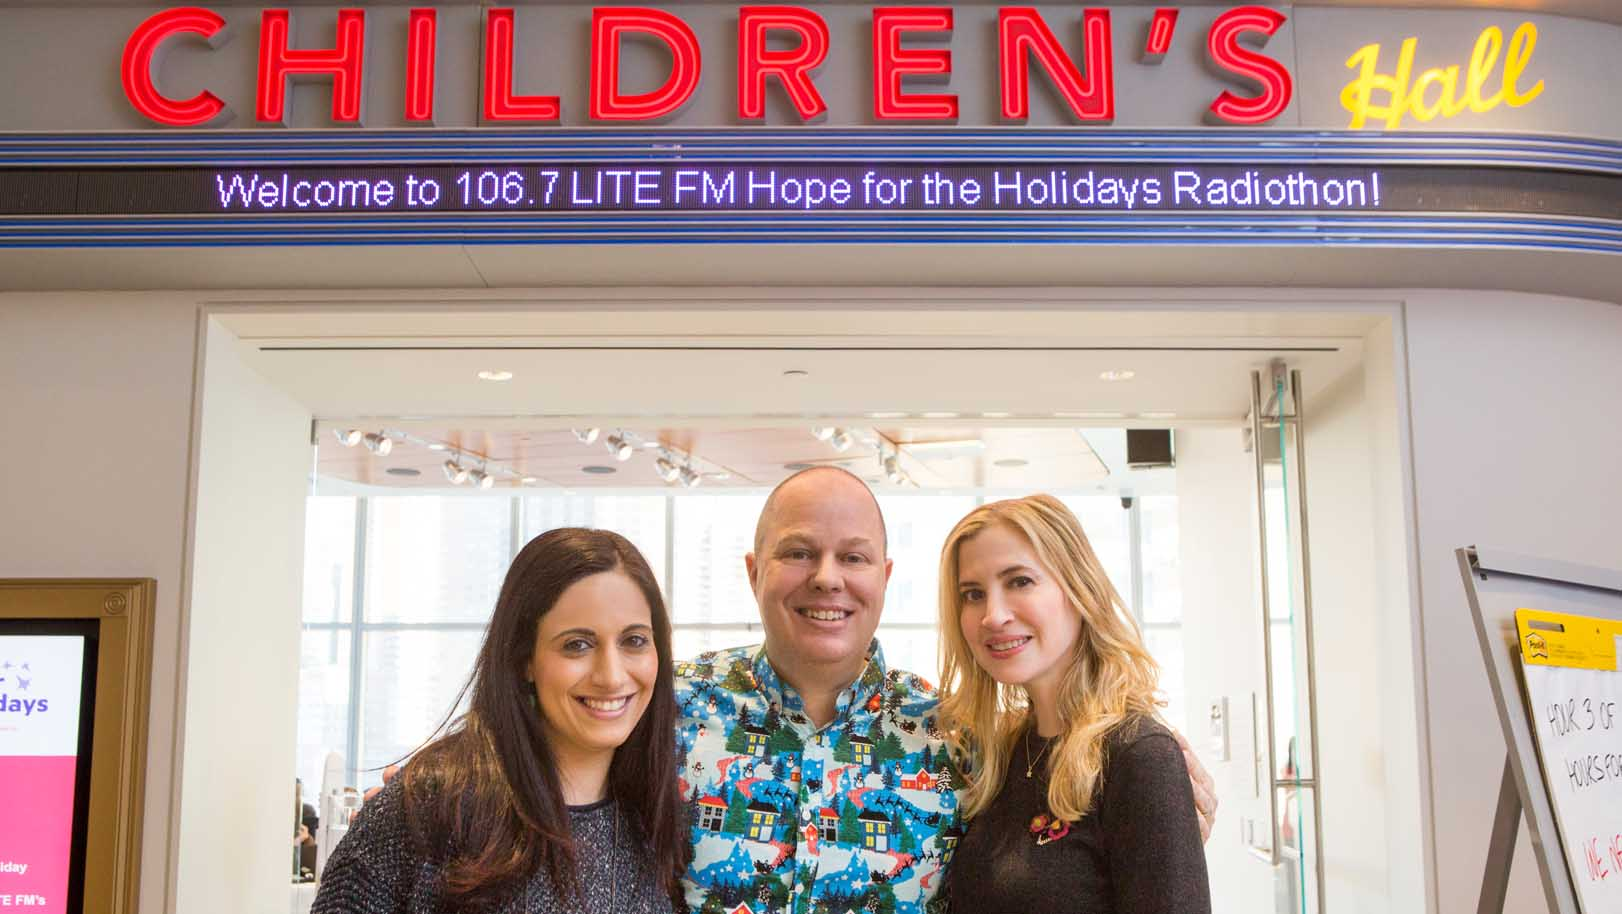 Millions of listeners tuned in to hear inspirational stories of hope and healing as told by children, their families, and care team members at Hassenfeld Children's Hospital.